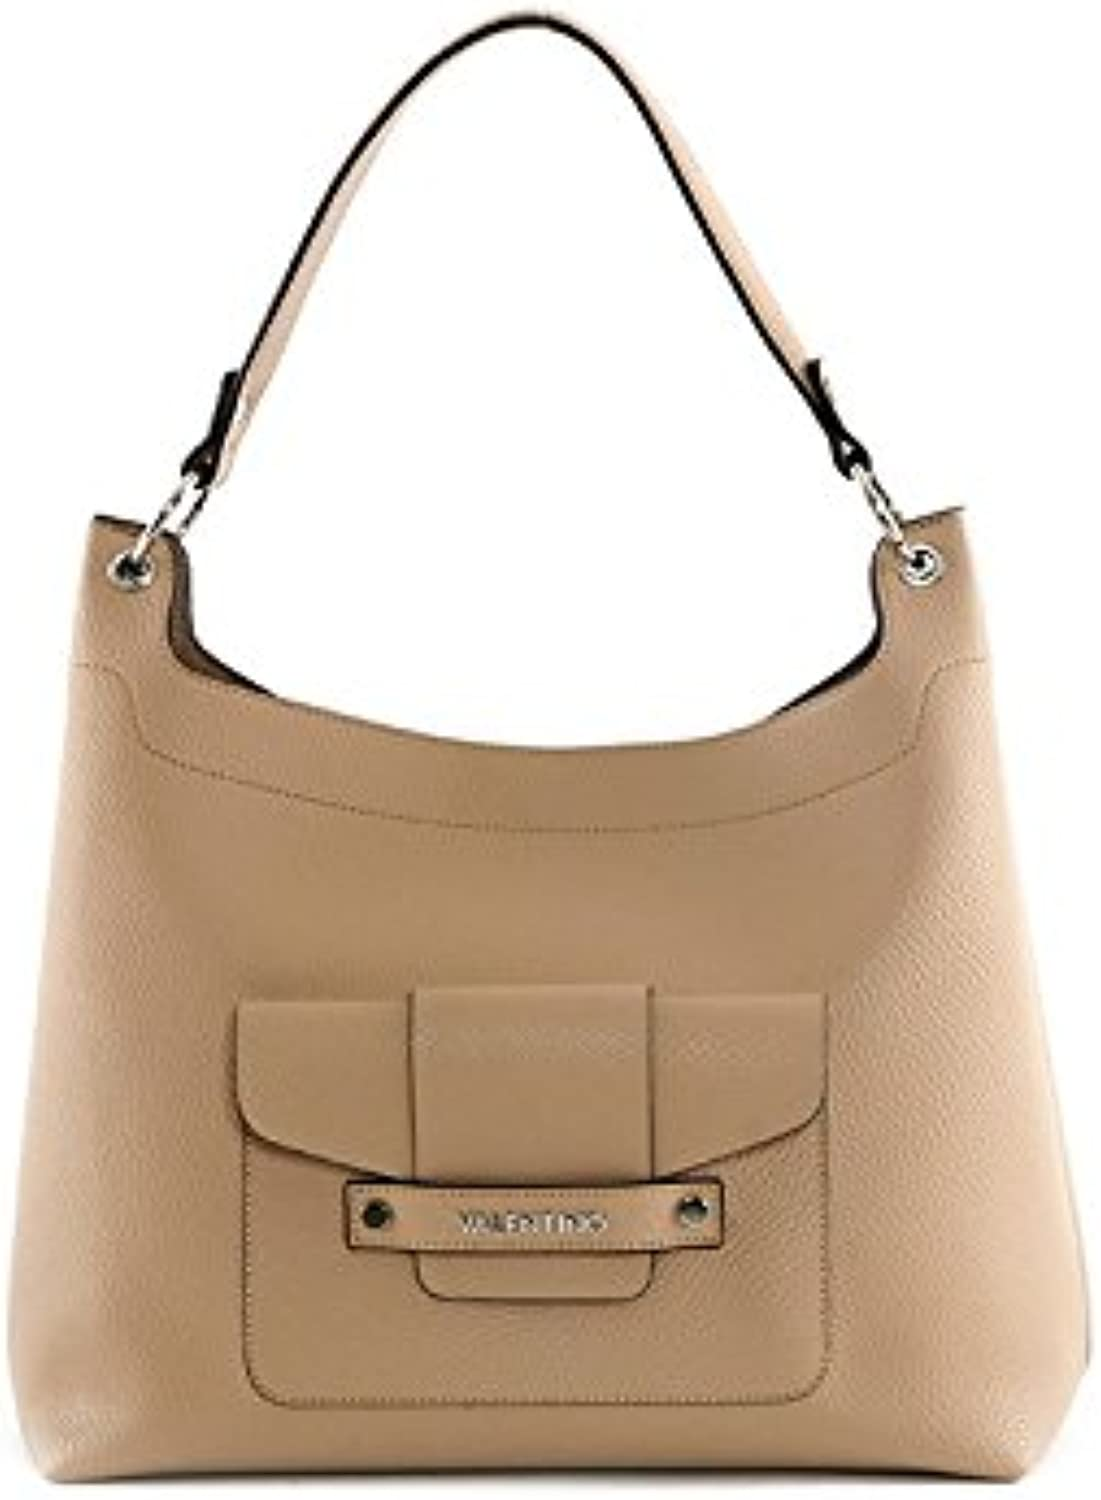 Mario Valentino Valentino Large Top Handle Vegan Leather Bag Single Handle